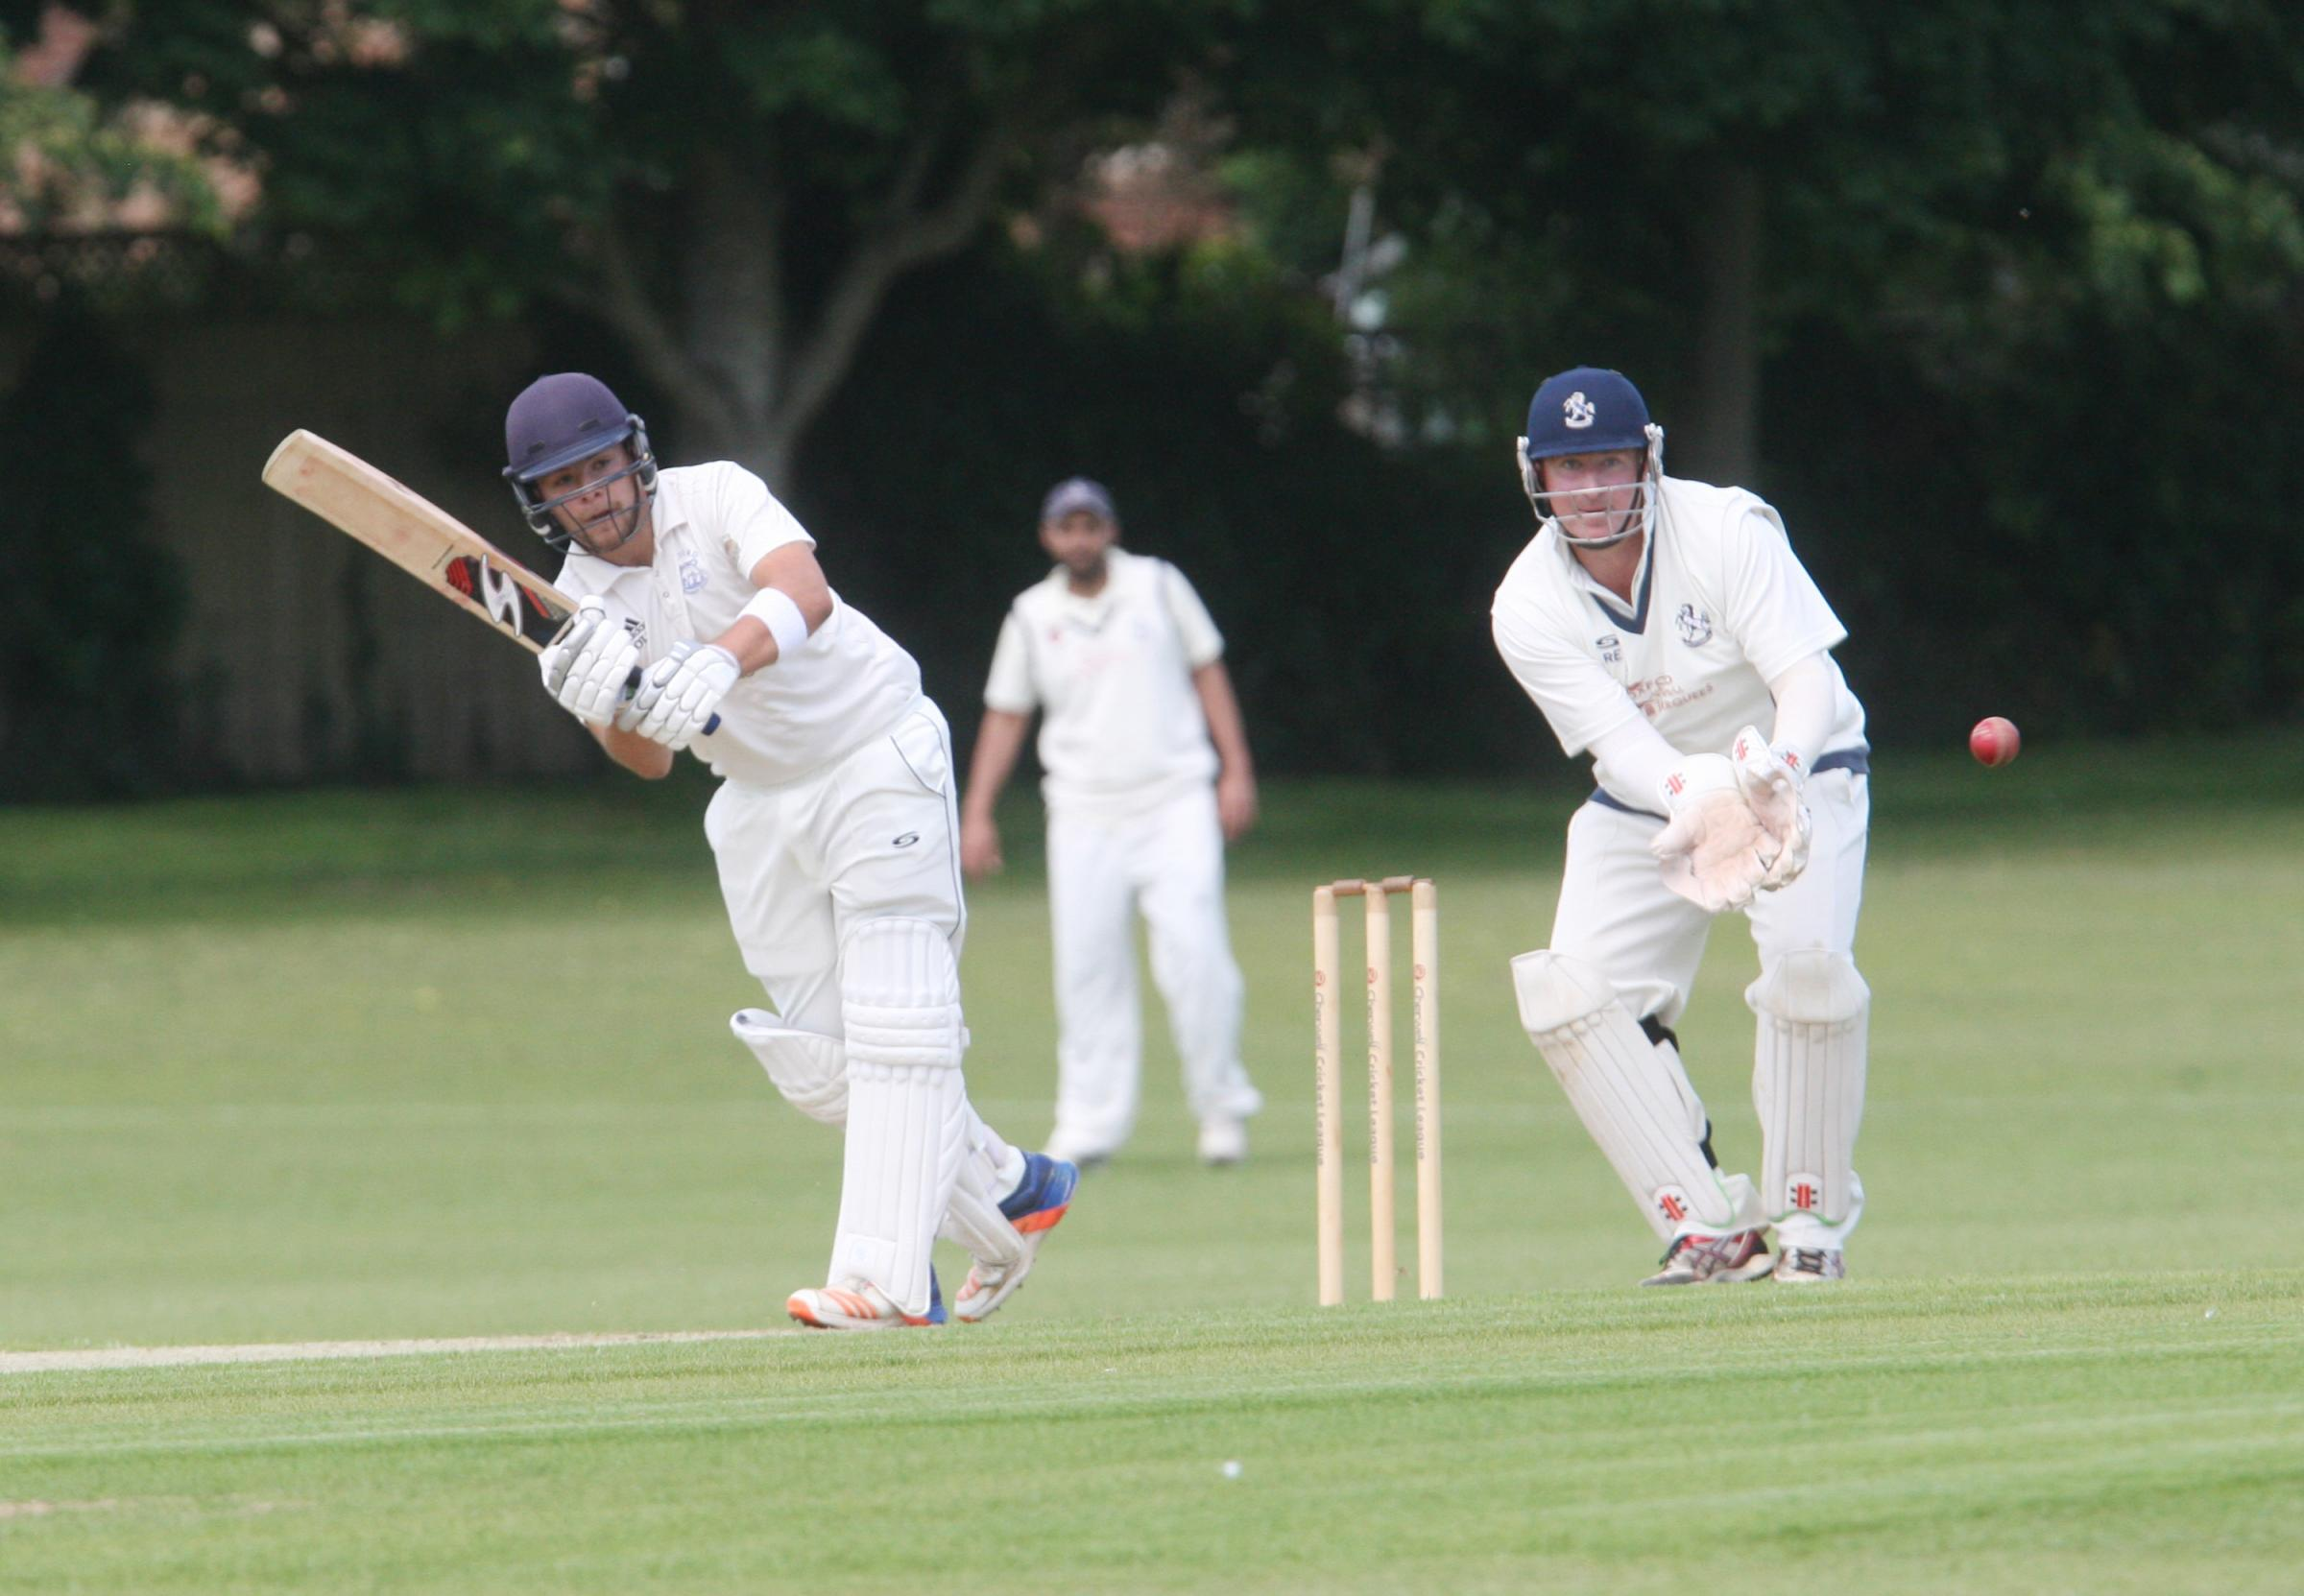 QUICKFIRE: Owyn Tong-Jones scored a rapid half-century in Oxon's successful run chase